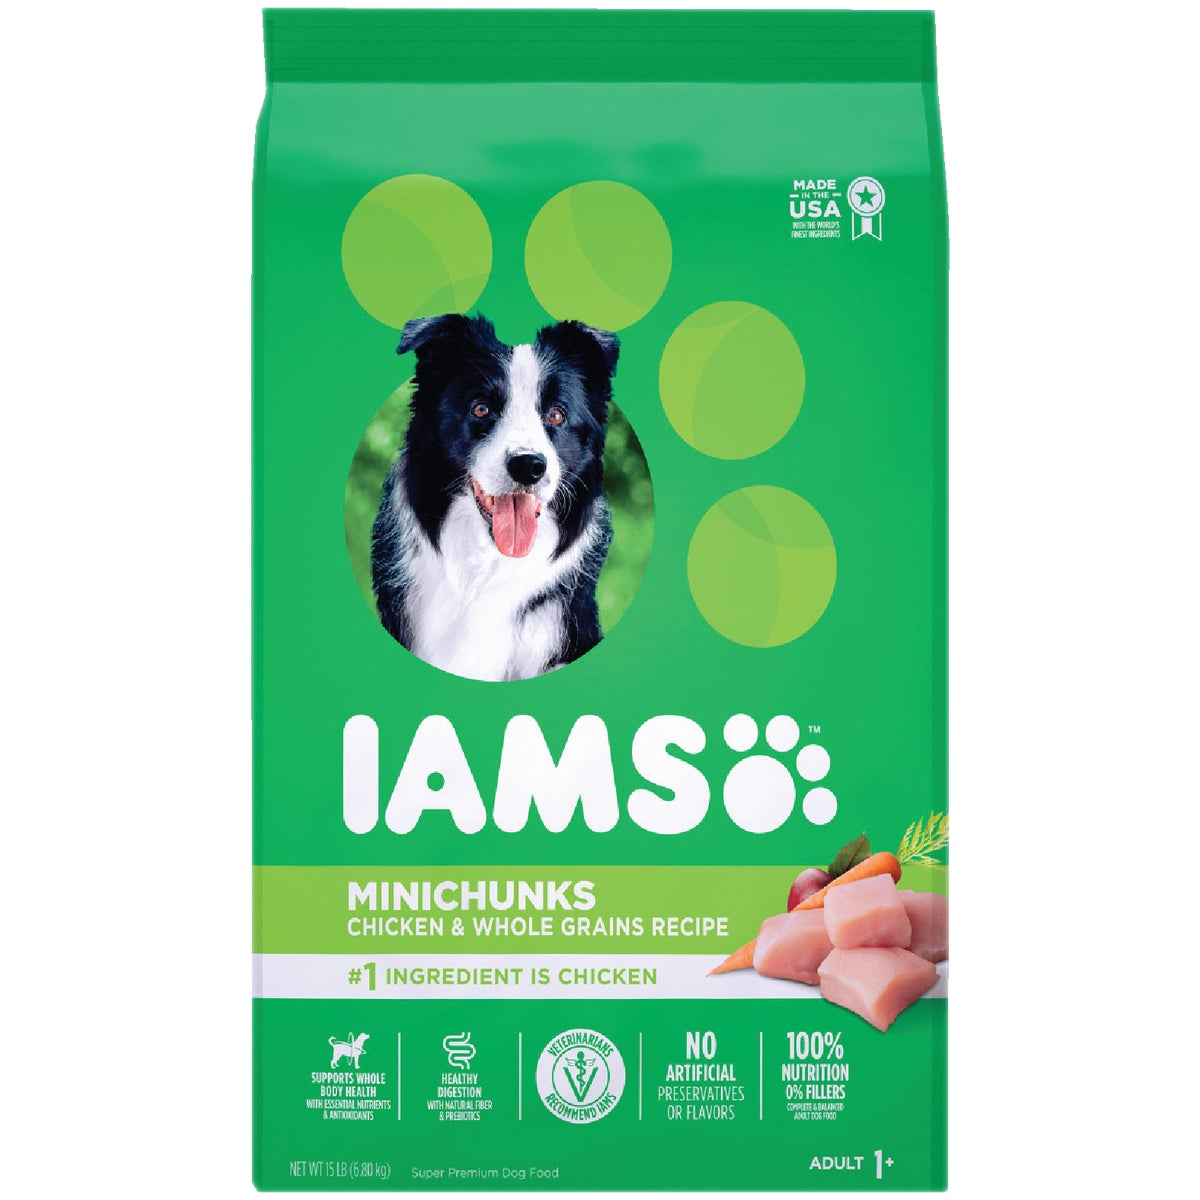 15LB MINICHUNK DOG FOOD - 10907 by Wolverton Iams